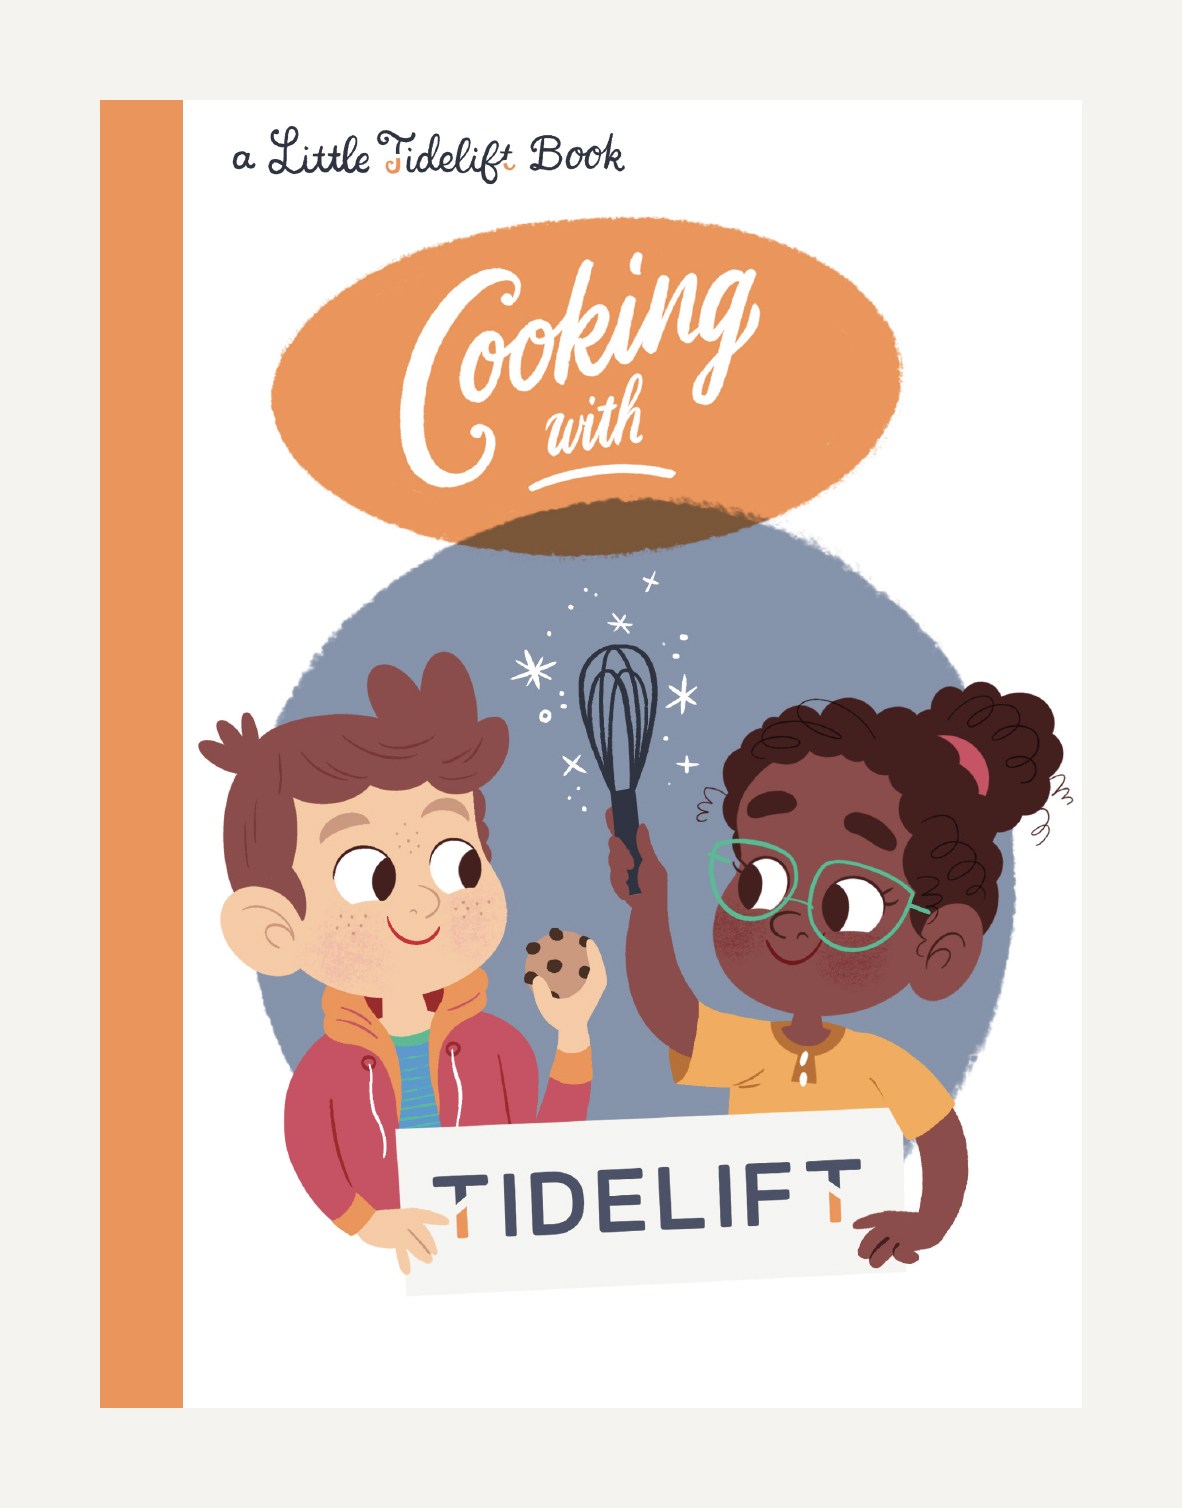 Cooking with Tidelift